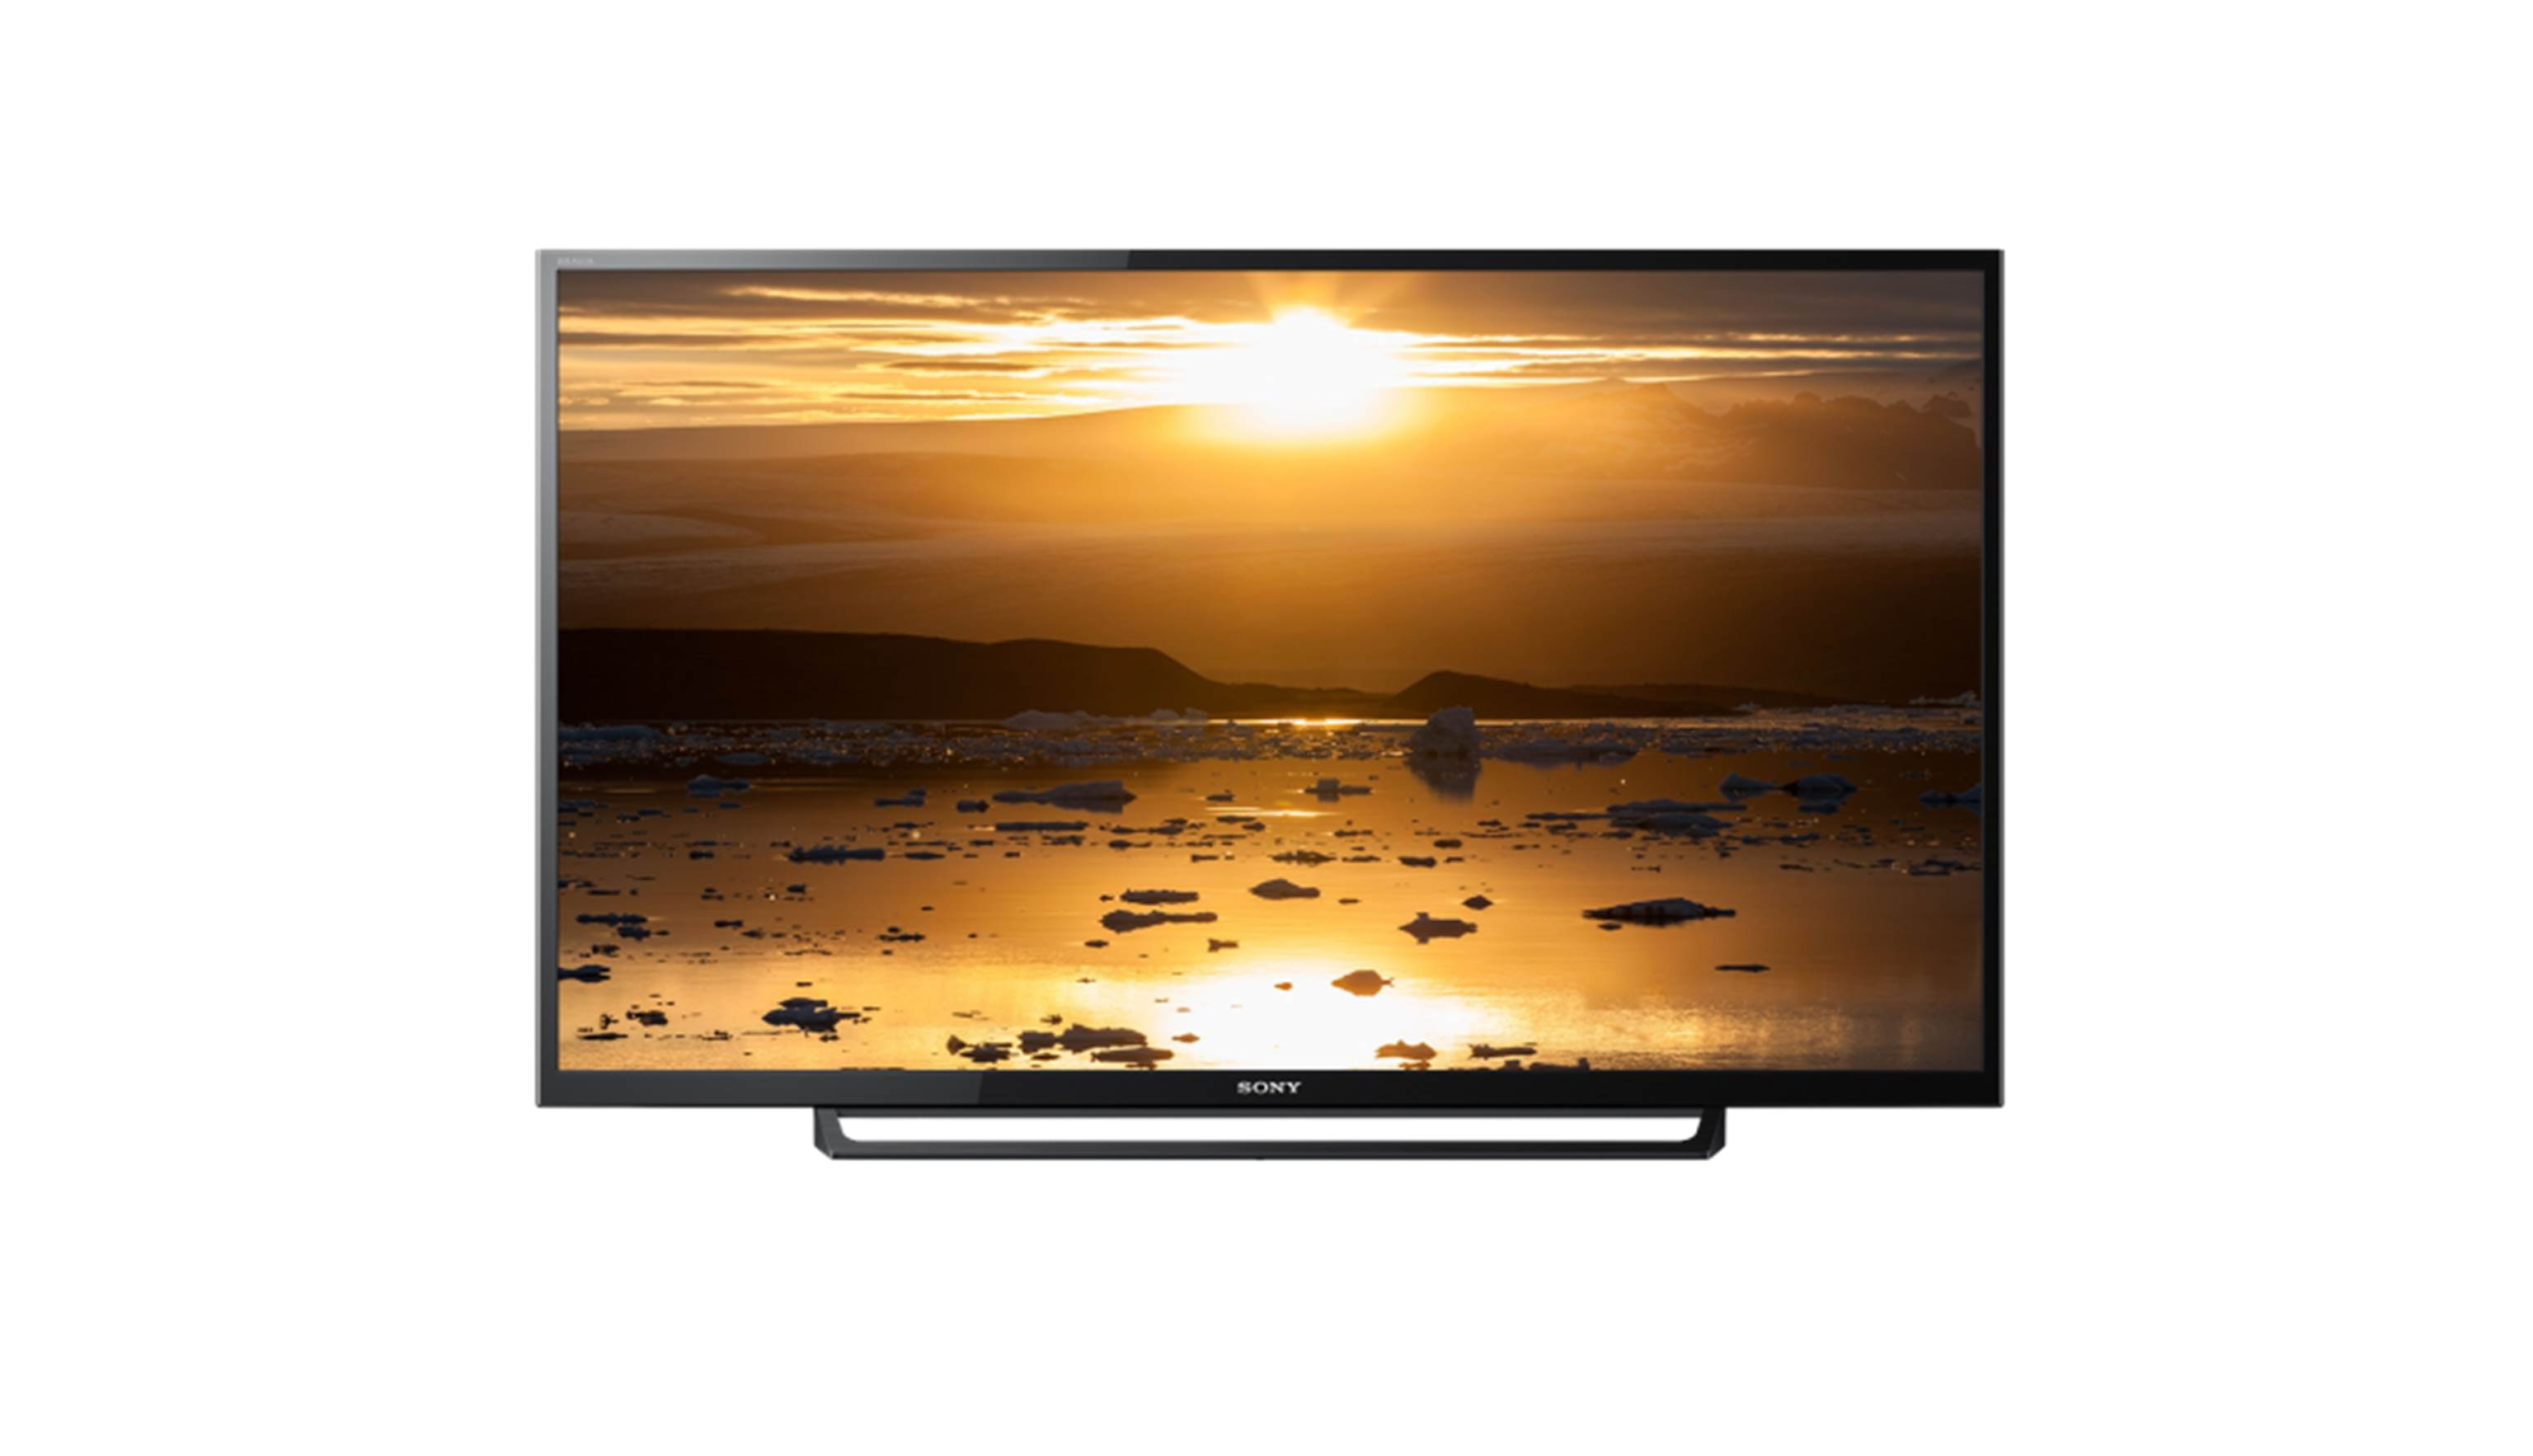 Tv Smart Tv Led Tv 4k Tv Samsung Tv Sony Tv Lg Smart Tv